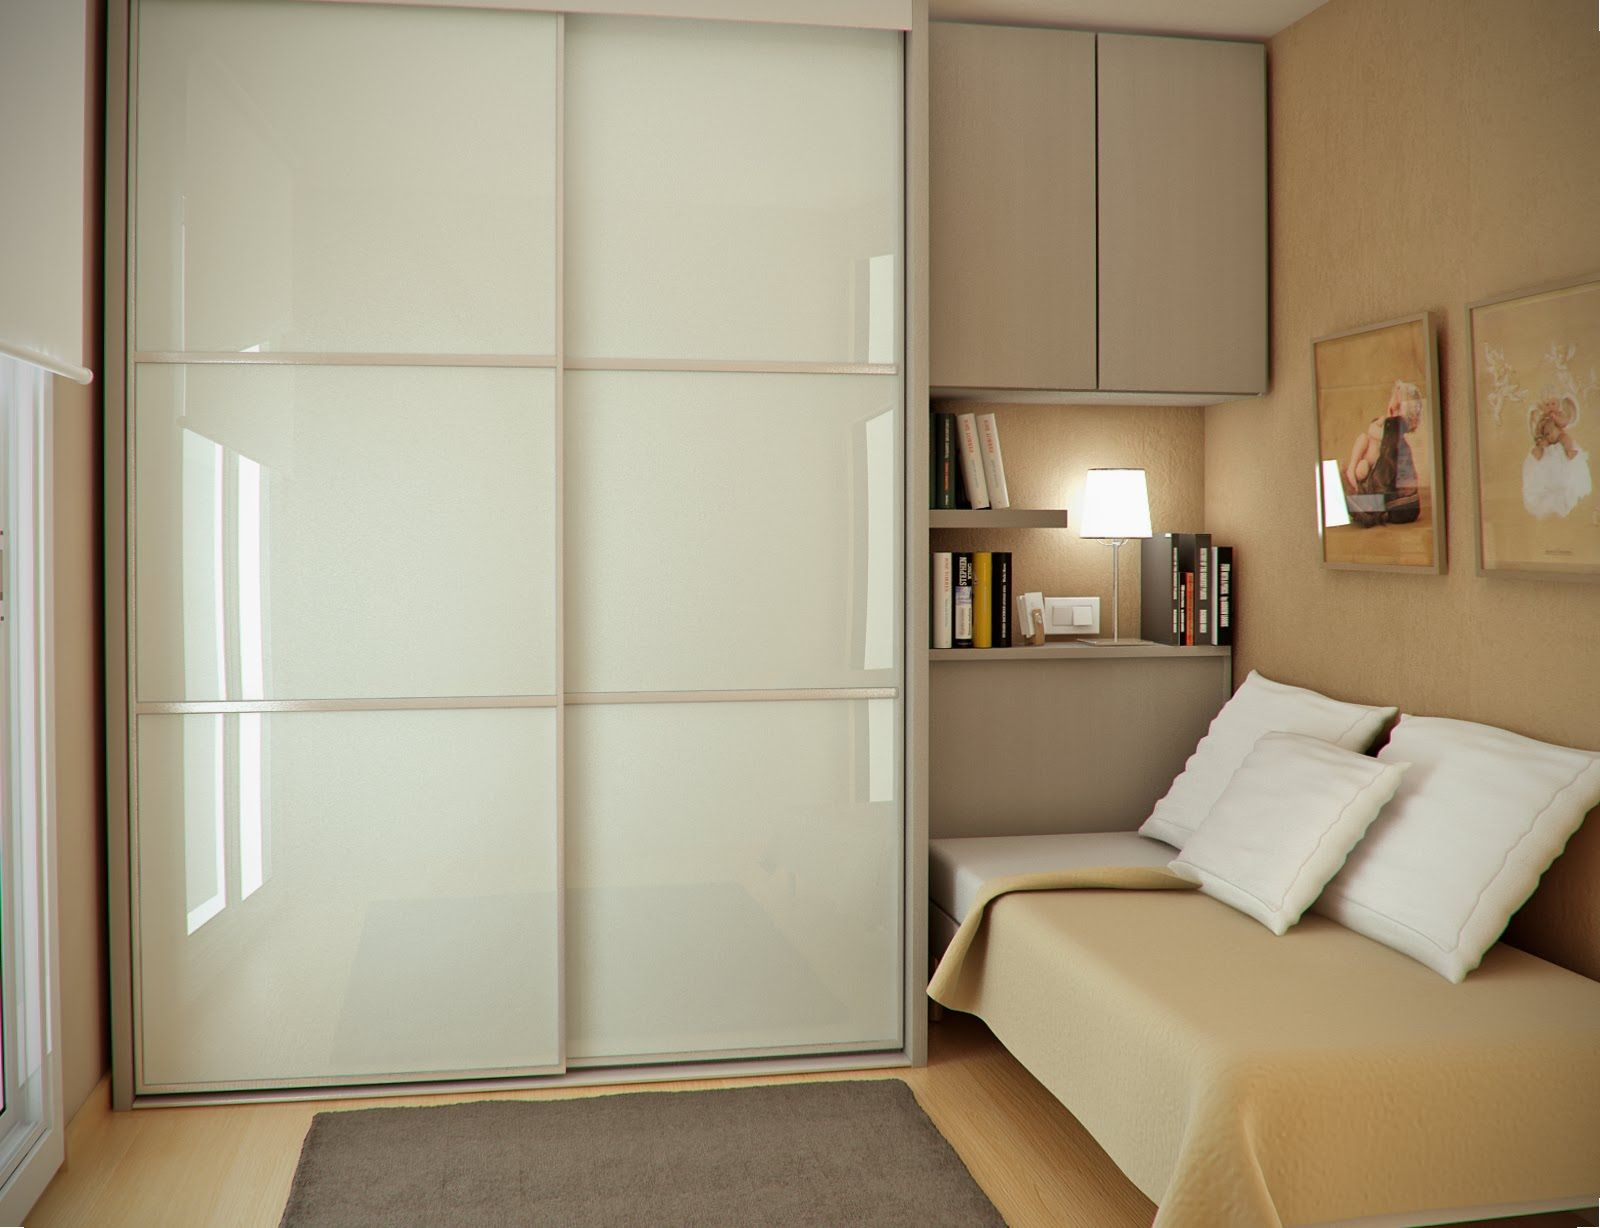 Wall Cabinet Design For Small Bedroom  Small Bedroom  Pinterest Beauteous Bedroom Wall Cabinet Design Design Inspiration